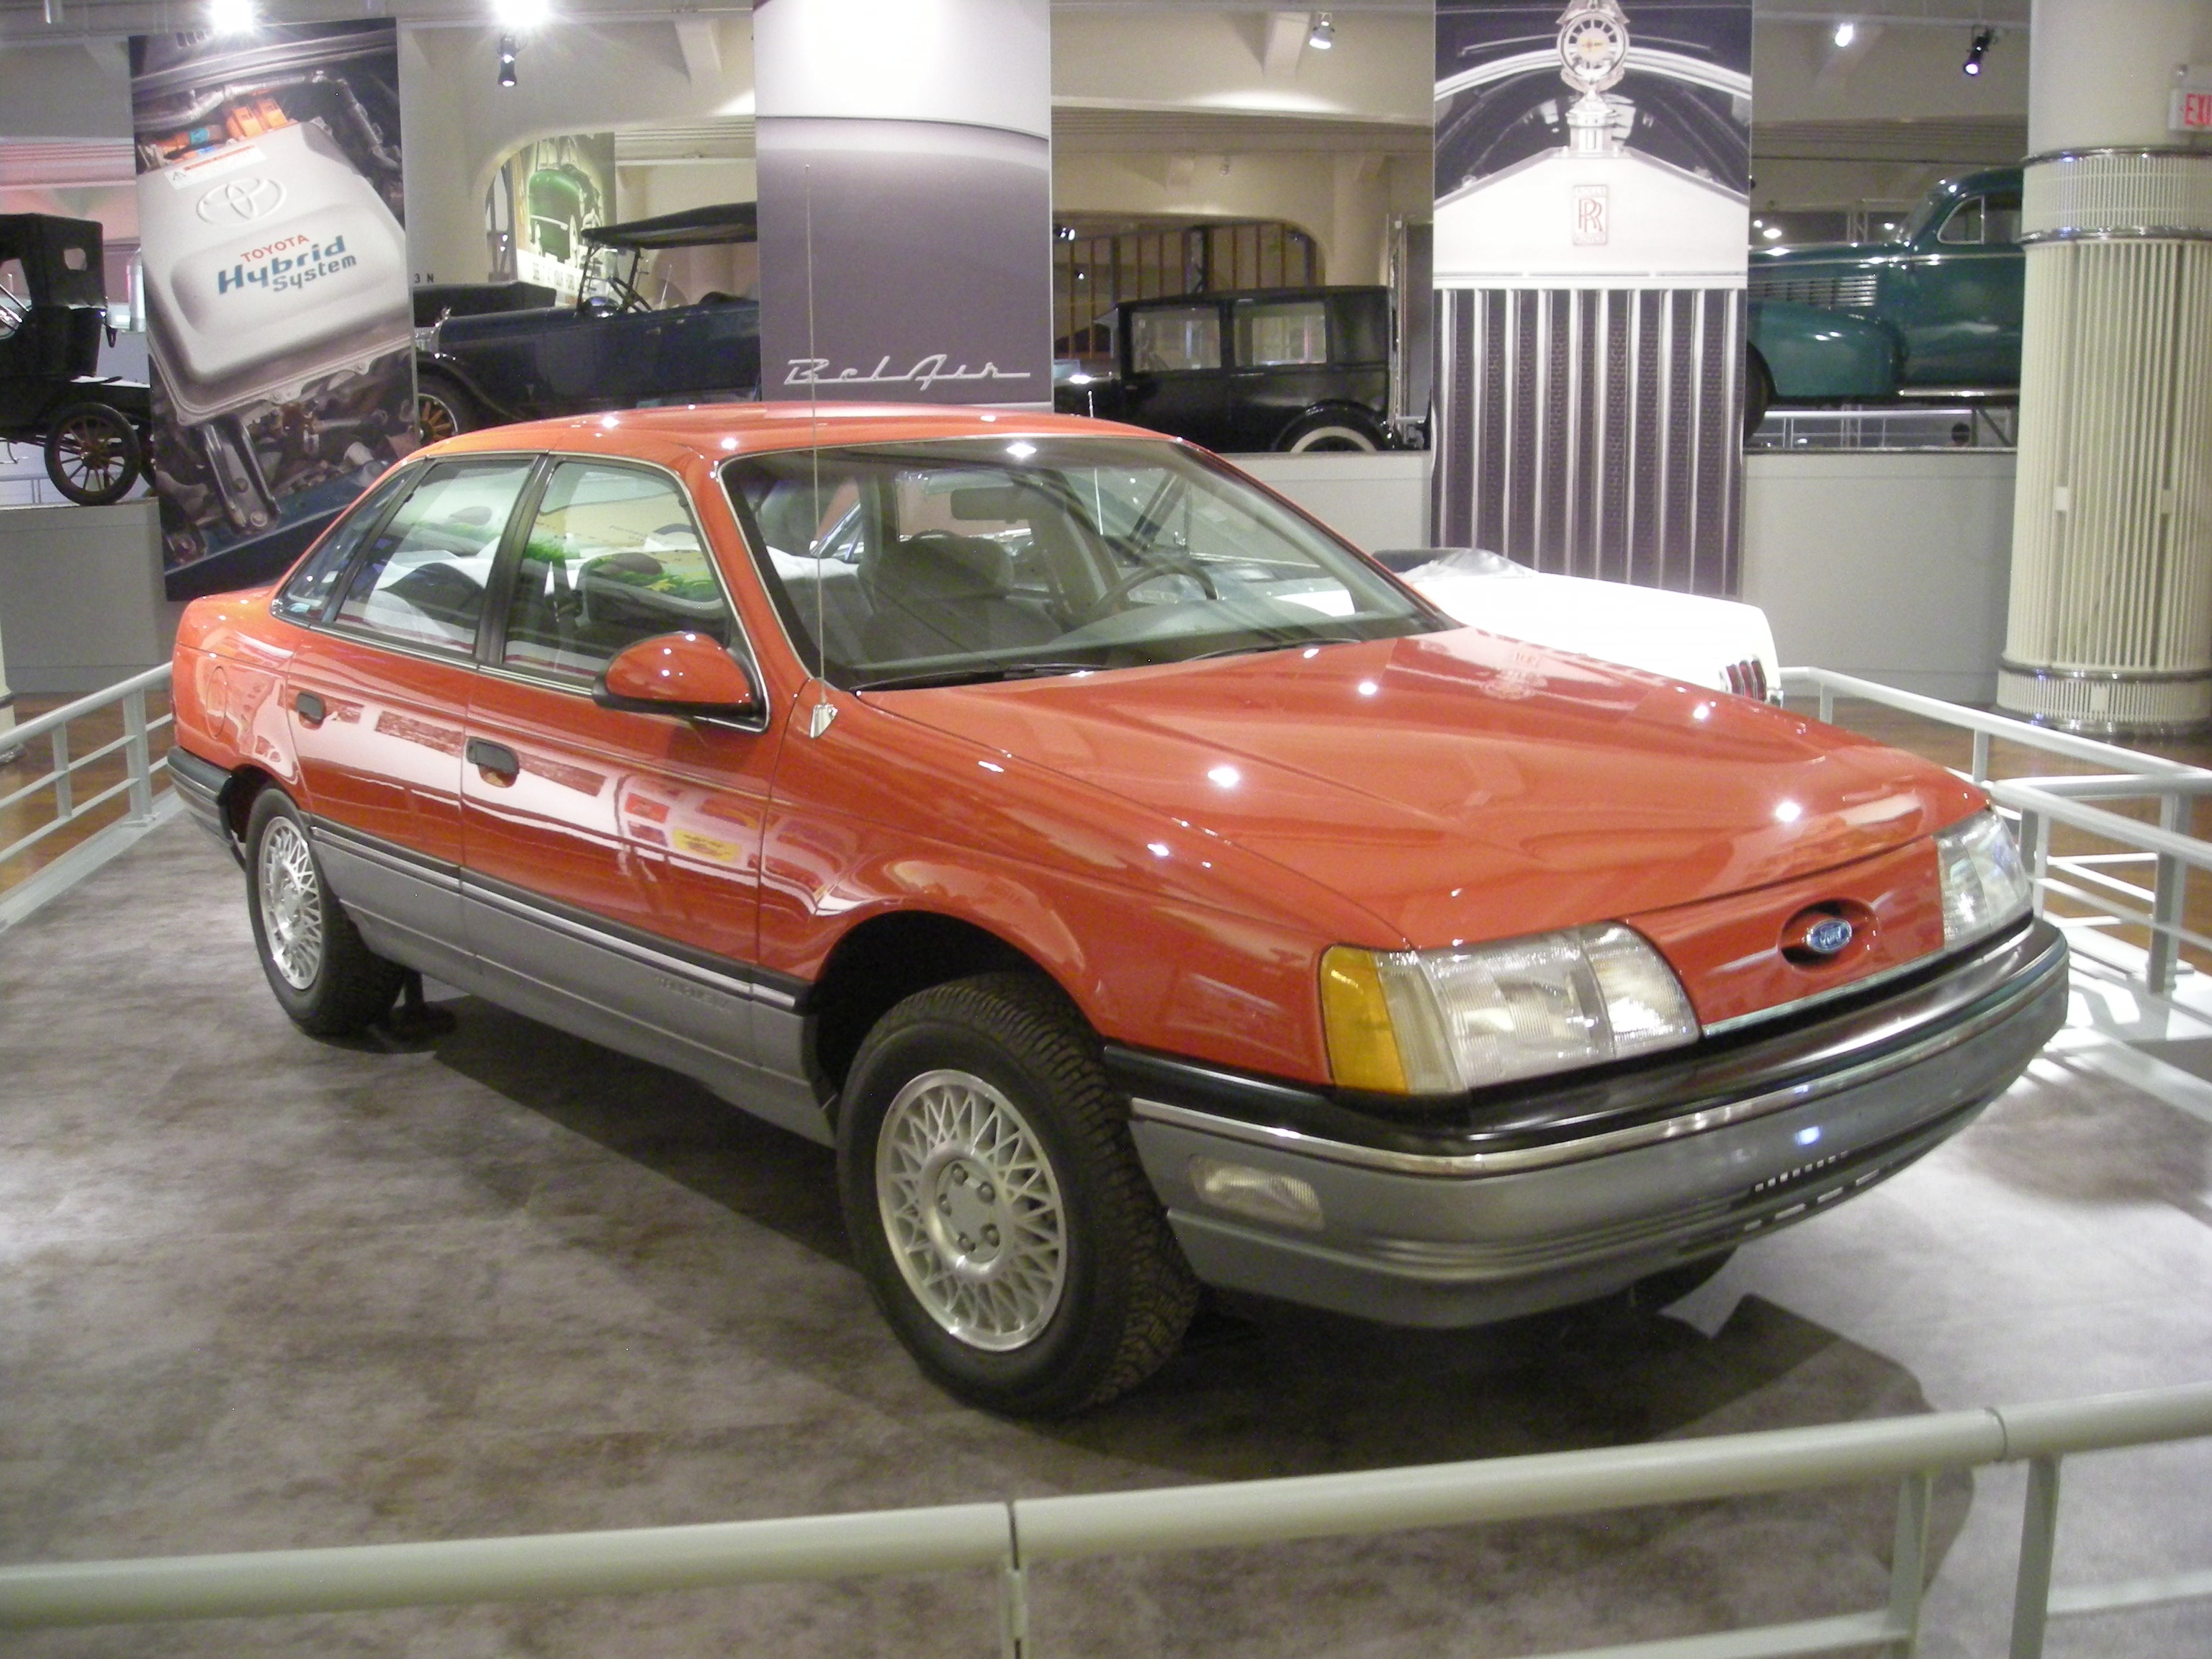 1990 Ford Taurus >> File:Henry Ford Museum August 2012 74 (1986 Ford Taurus).jpg - Wikimedia Commons